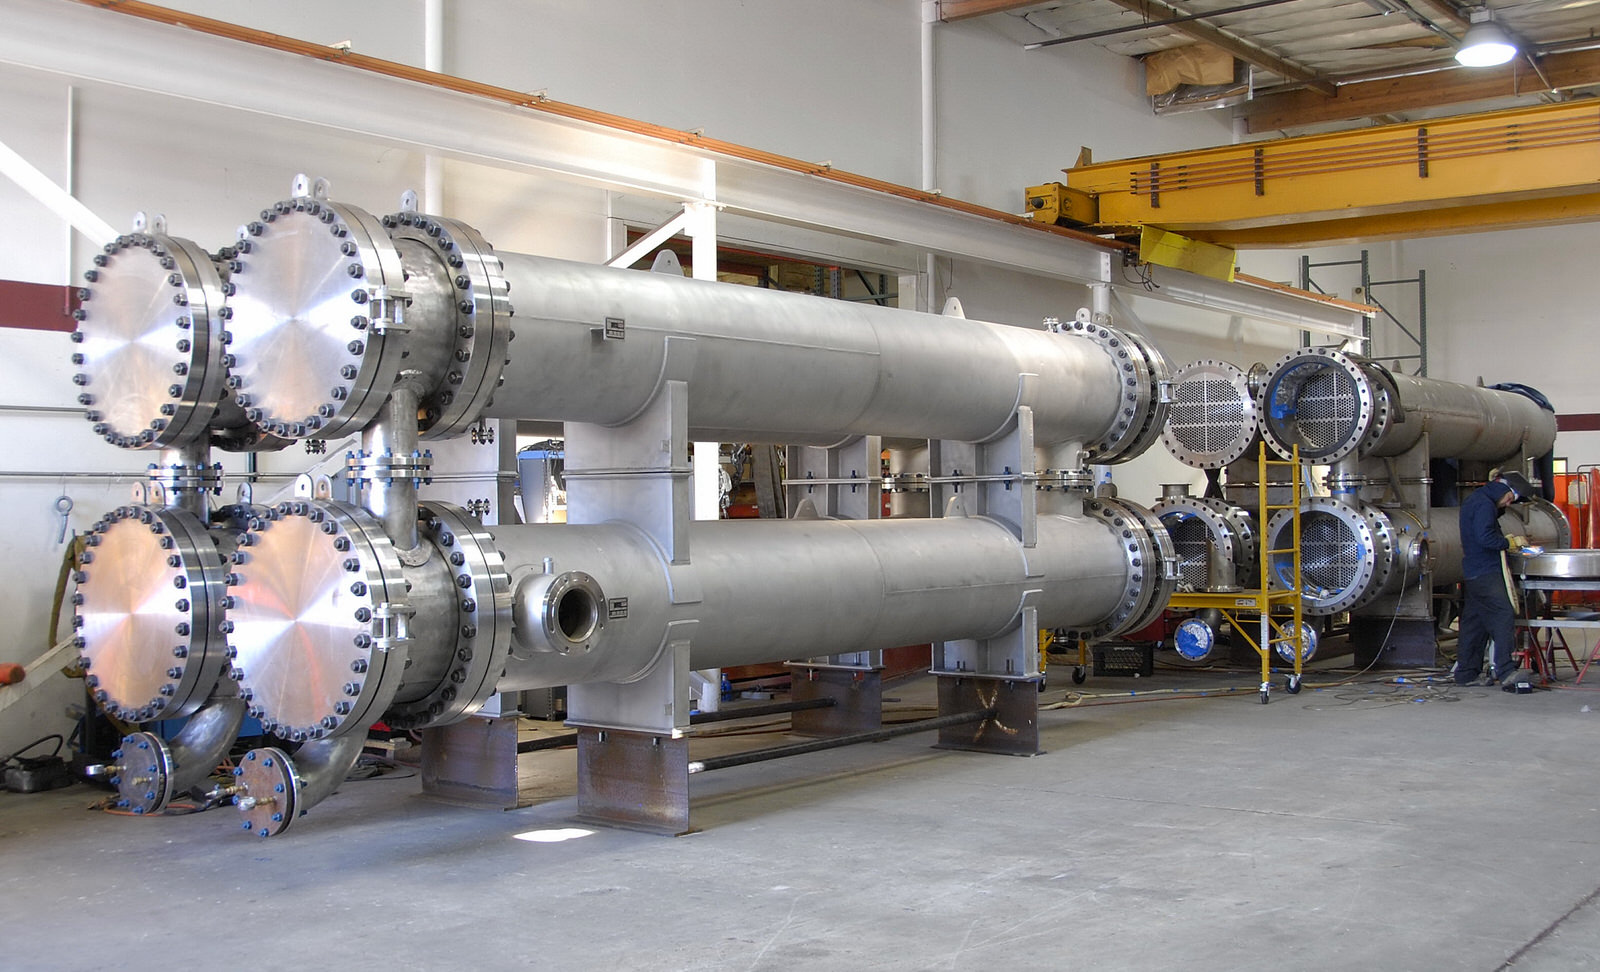 heatexchanger is used to transfer heat